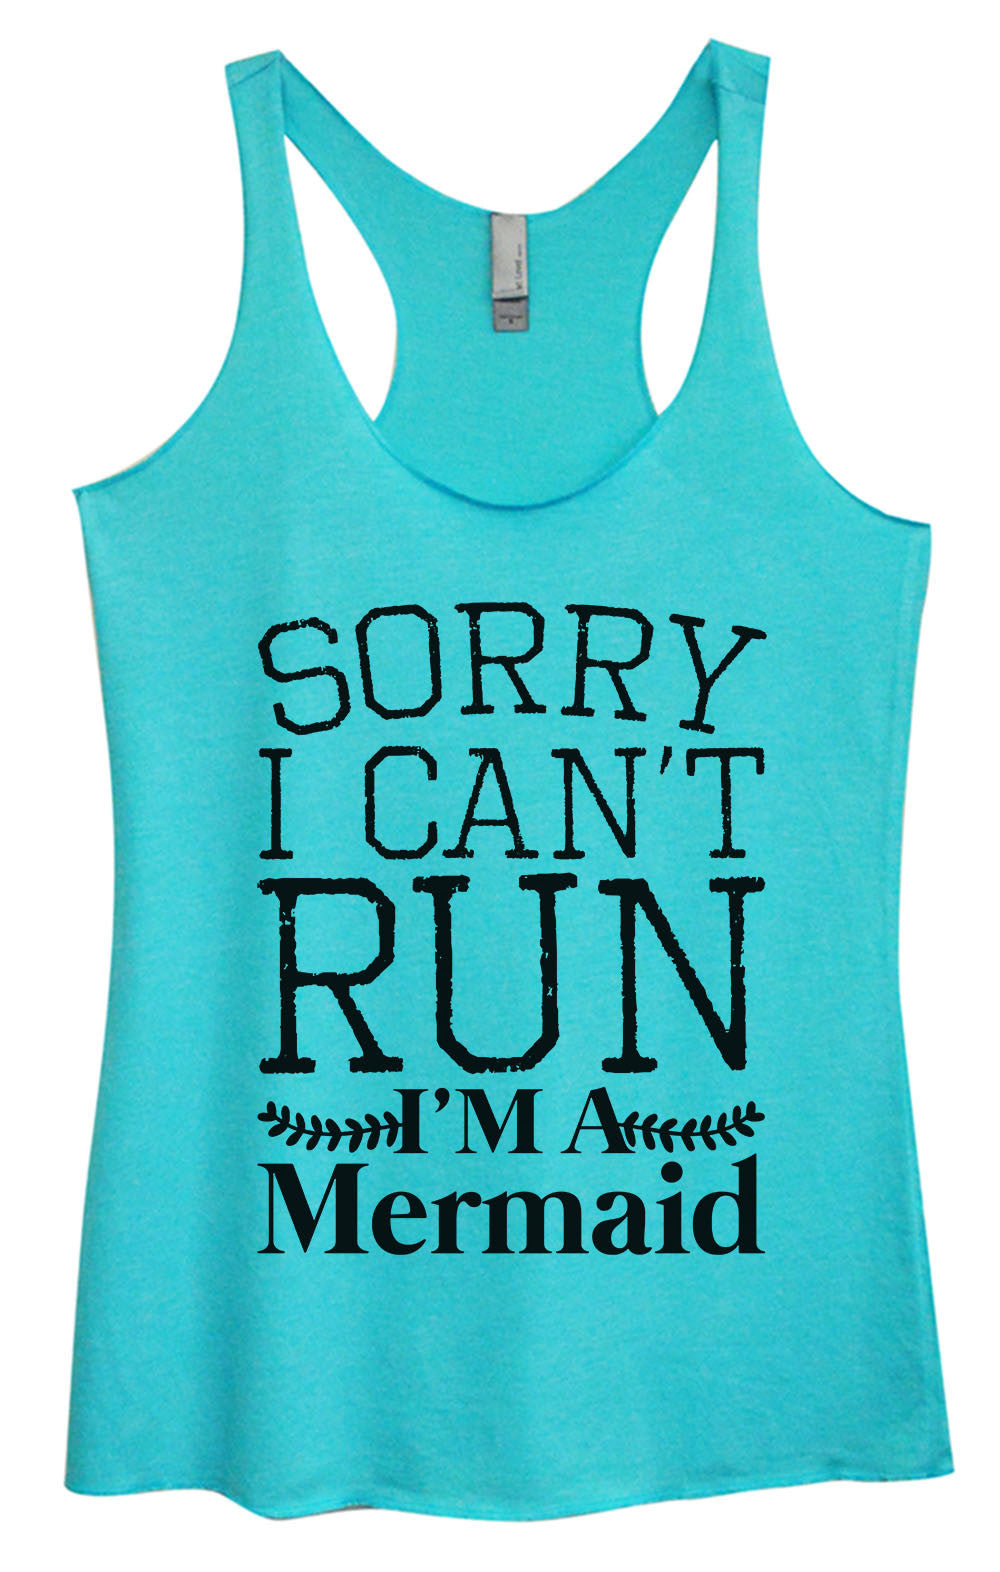 Womens Fashion Triblend Tank Top - Sorry I Can't Run I'm A Mermaid - Tri-1563 - Funny Shirts Tank Tops Burnouts and Triblends  - 1